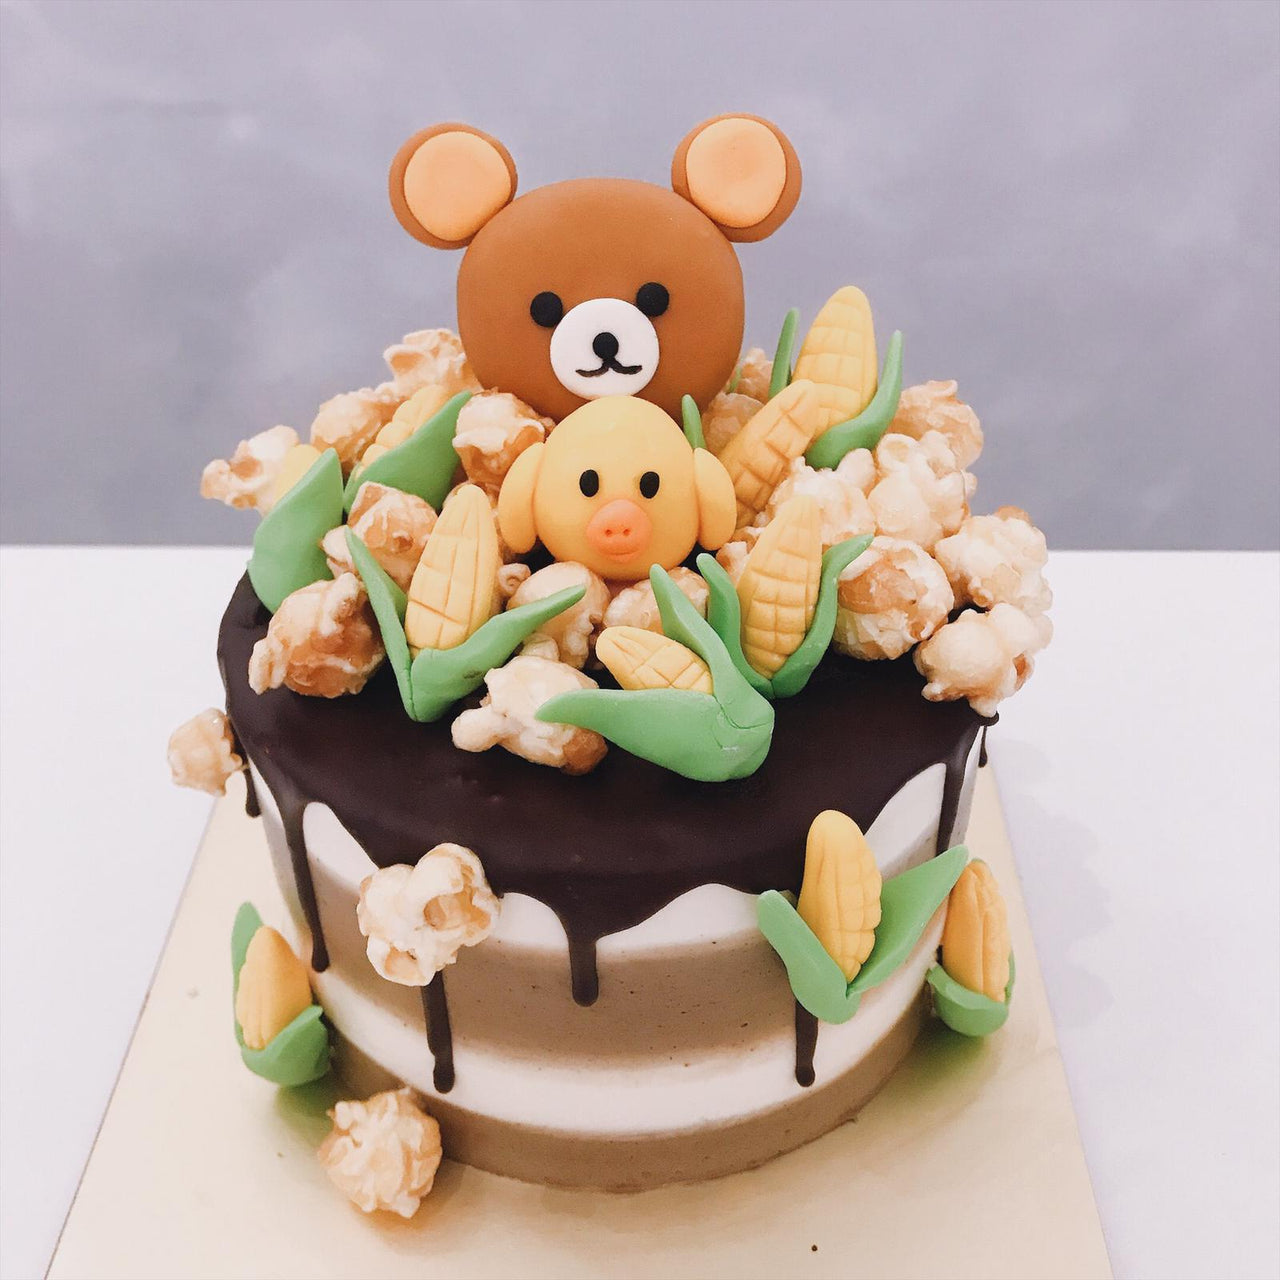 Bear and friends popcorn cake